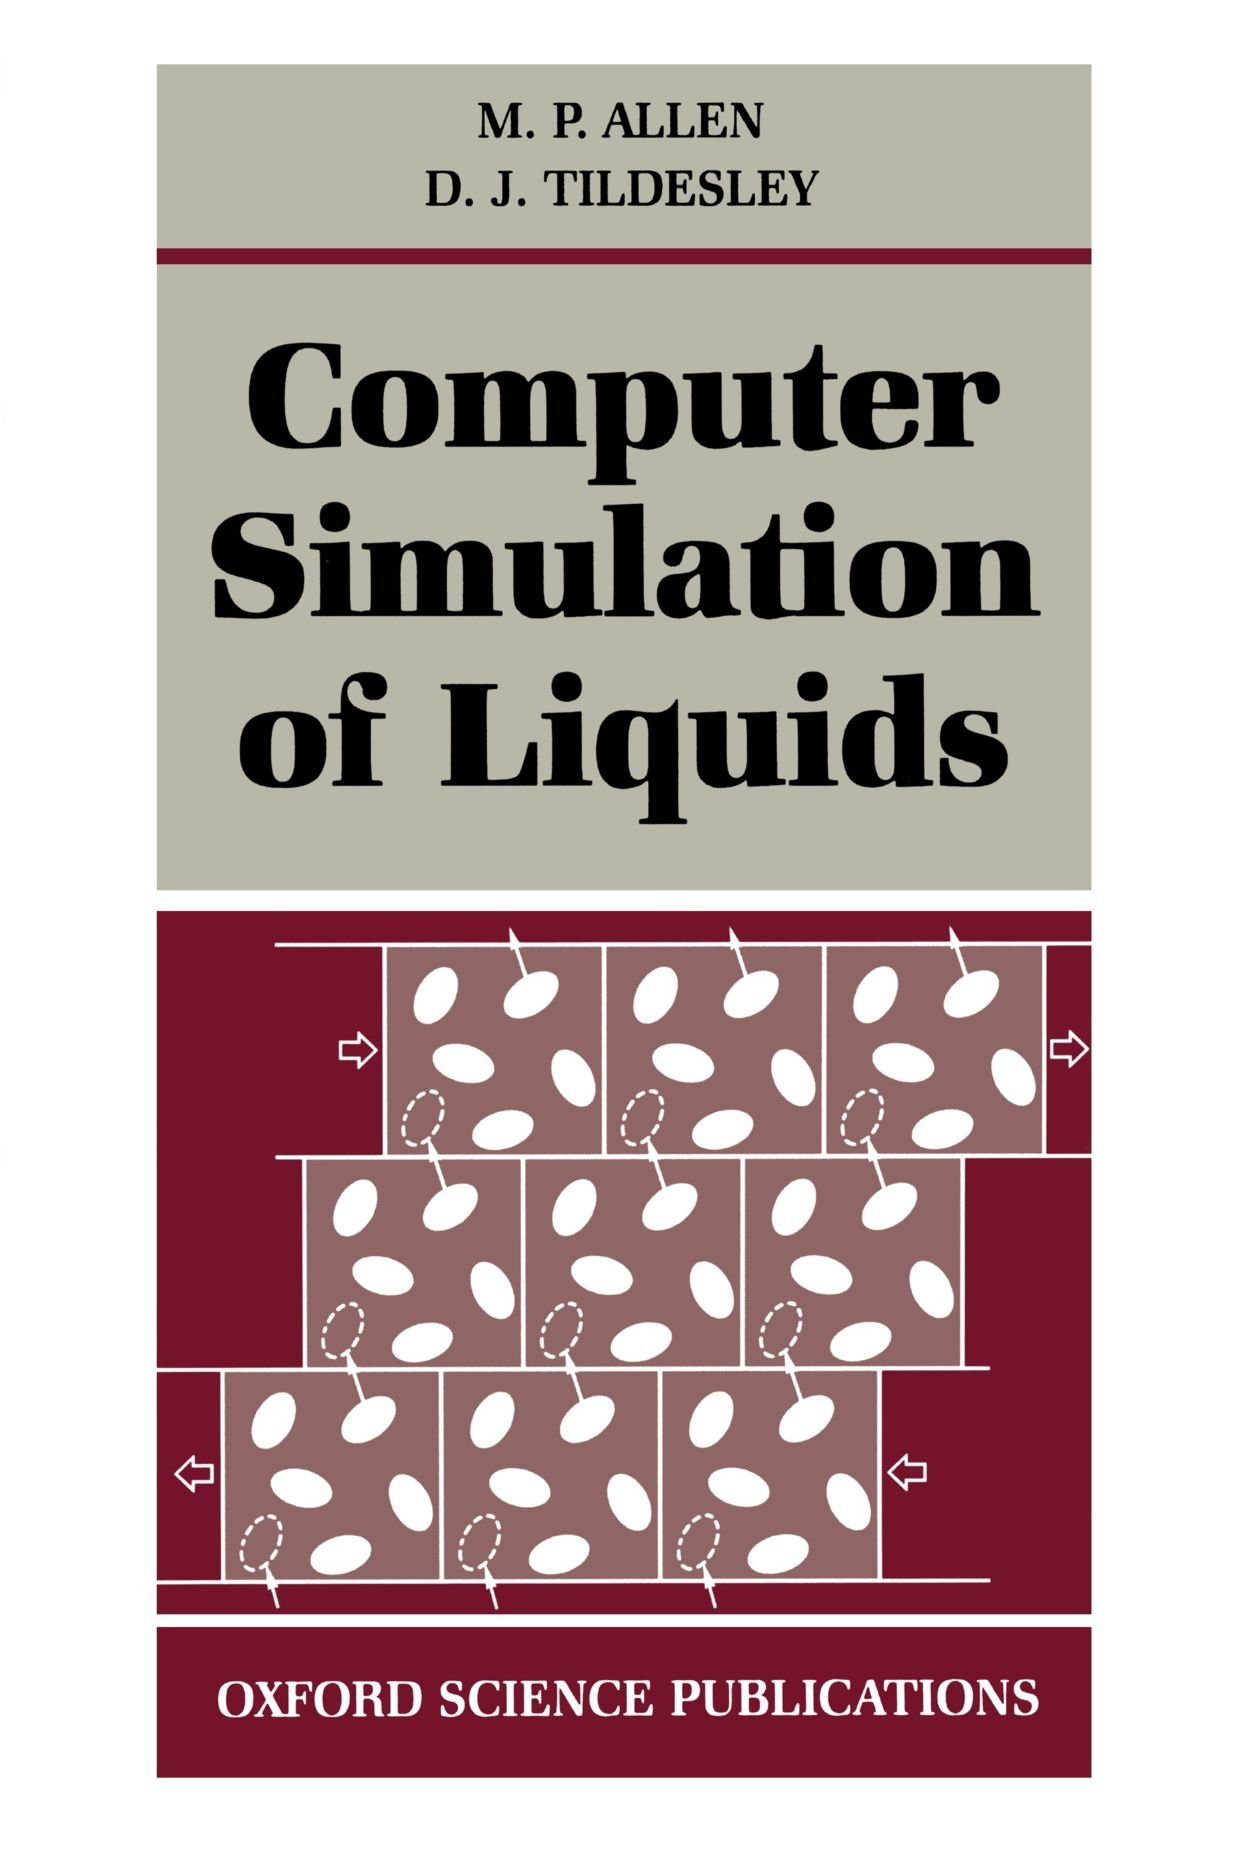 Computer Simulation of Liquids (Oxford Science Publications)